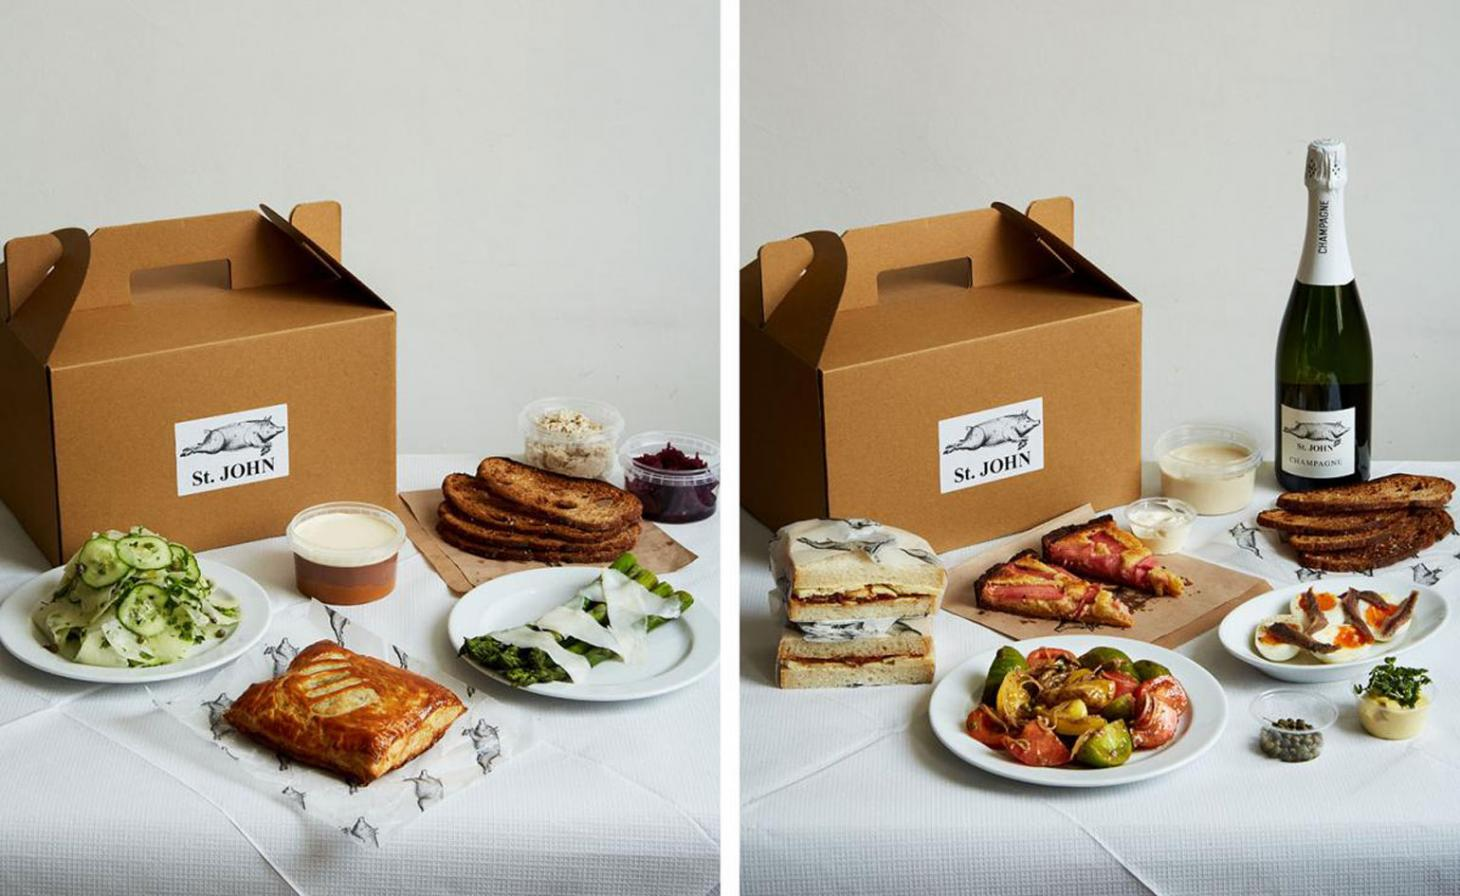 Two picnic spreads from st John's with meats and cheeses